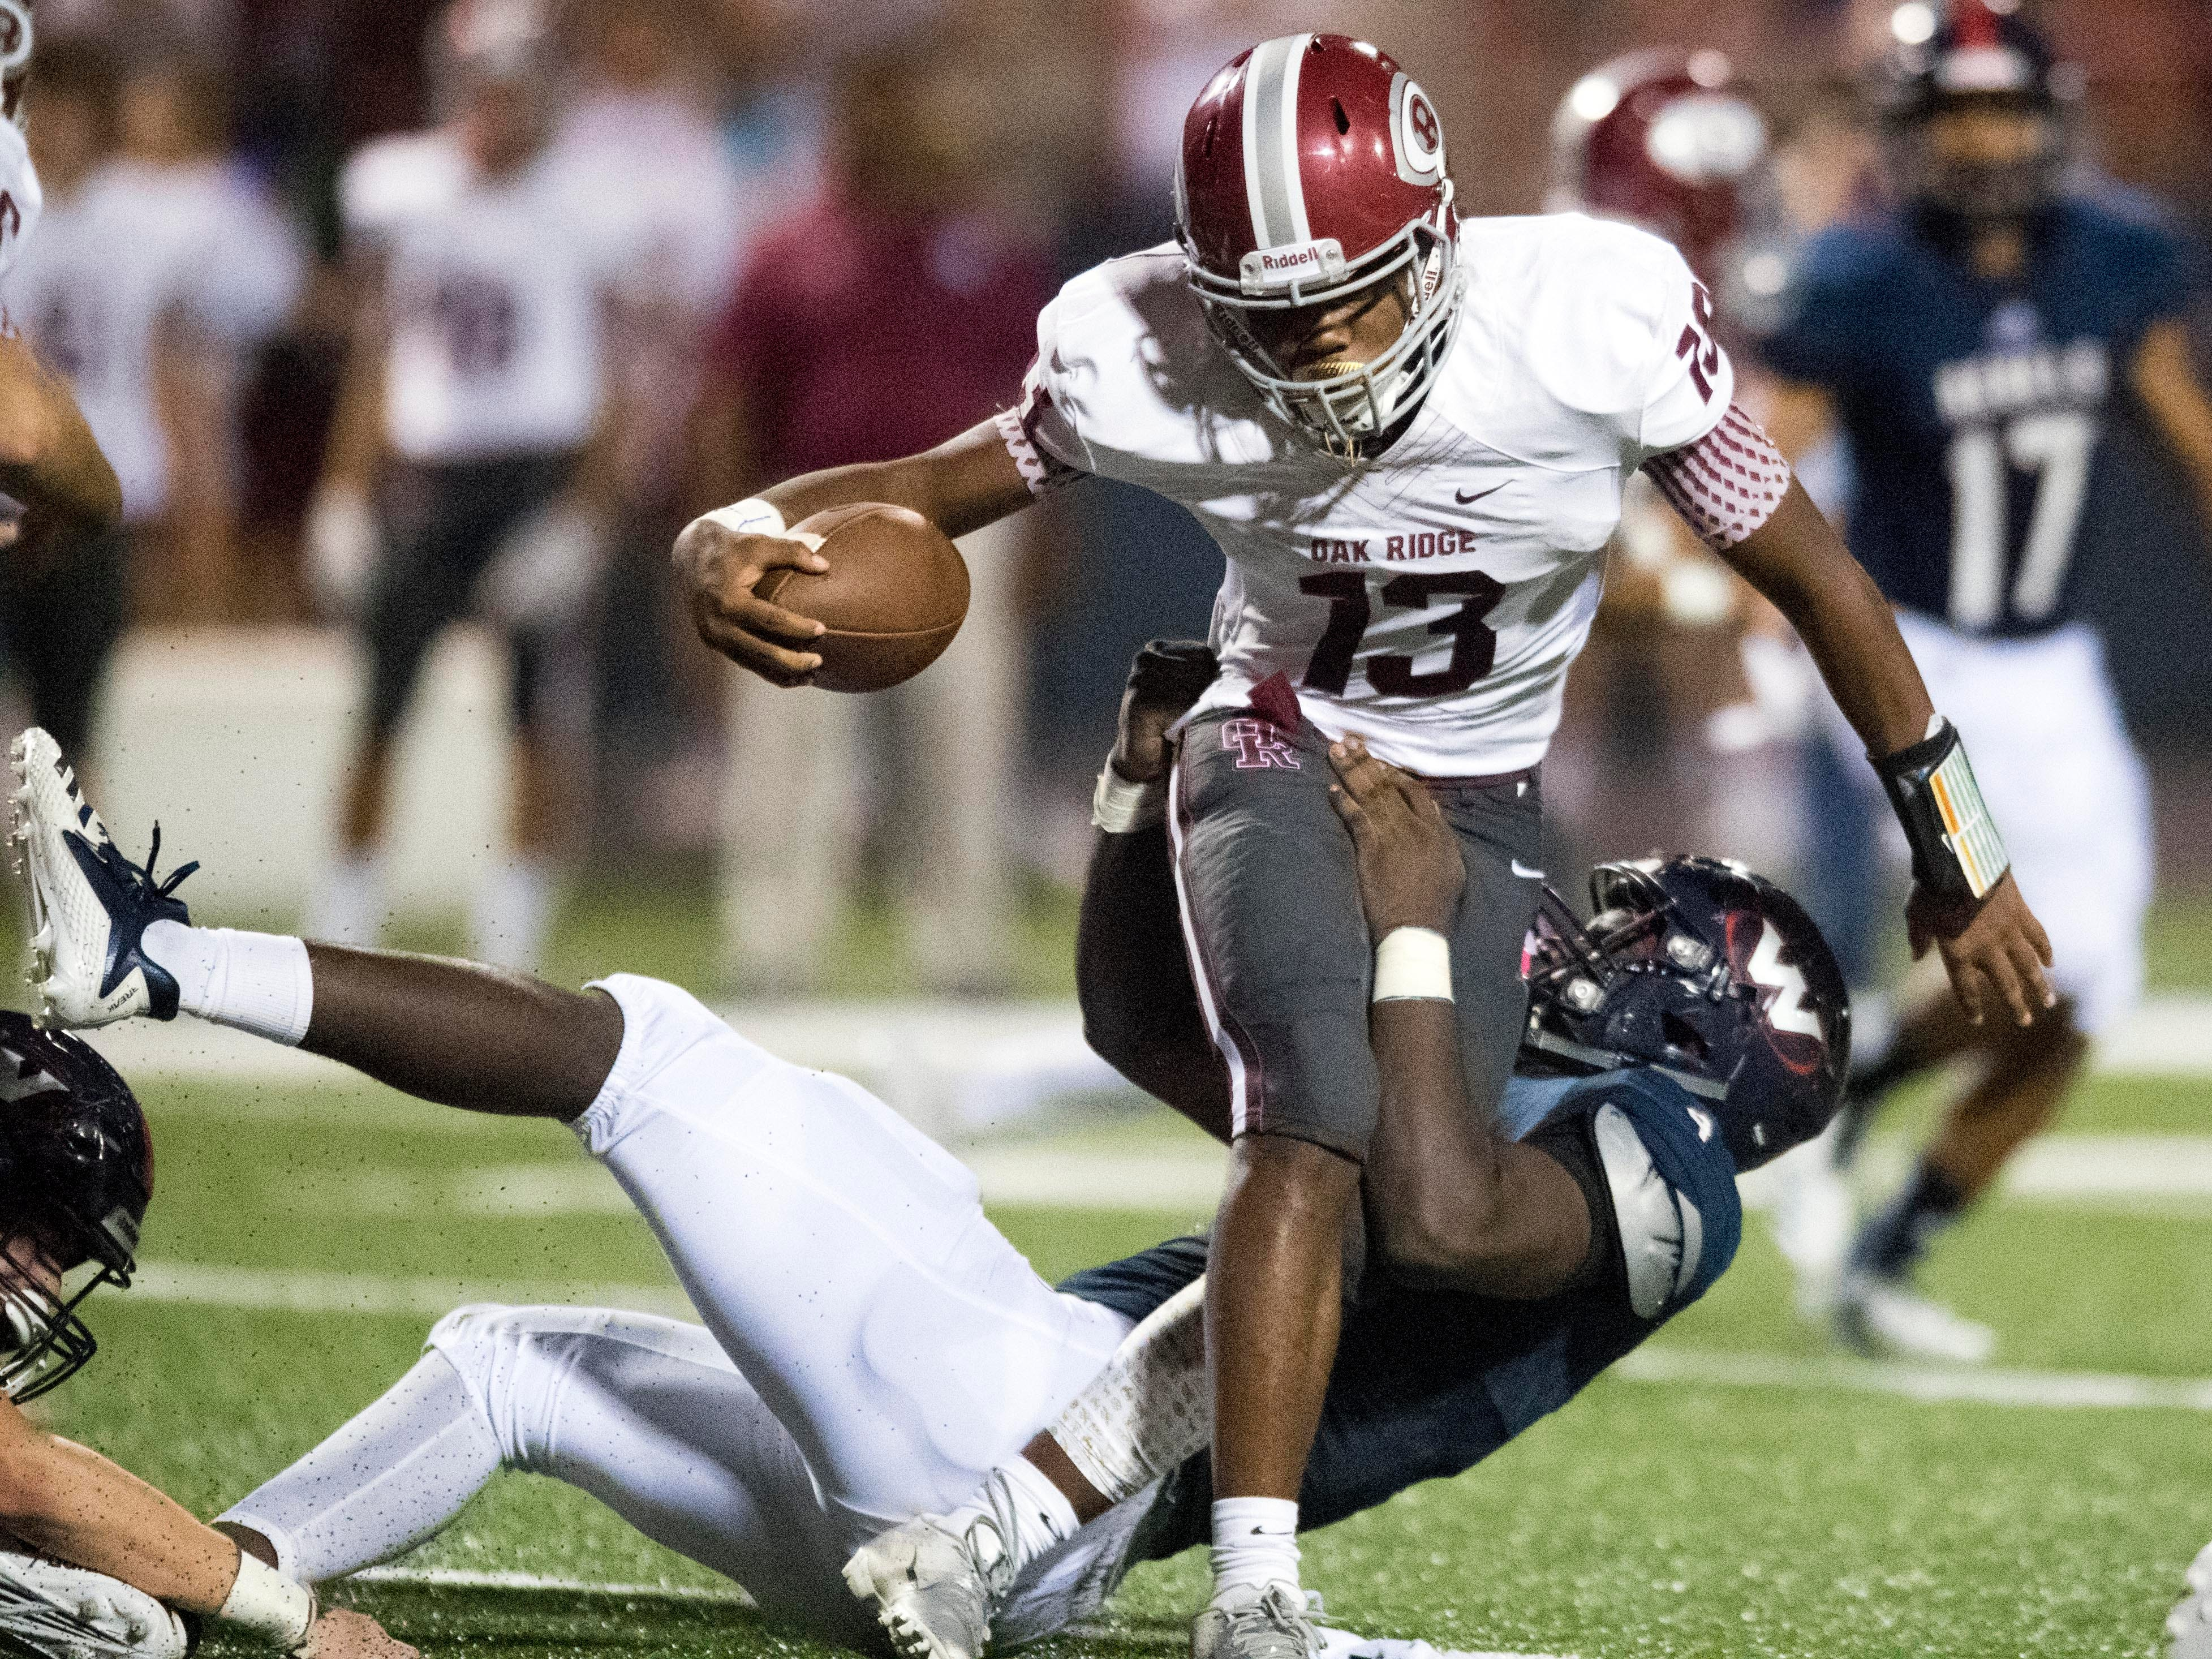 Oak Ridge's Herbert Booker (13) is pulled down by West's Tyrece Edwards (4) in the football game at West on Friday, September 14, 2018.